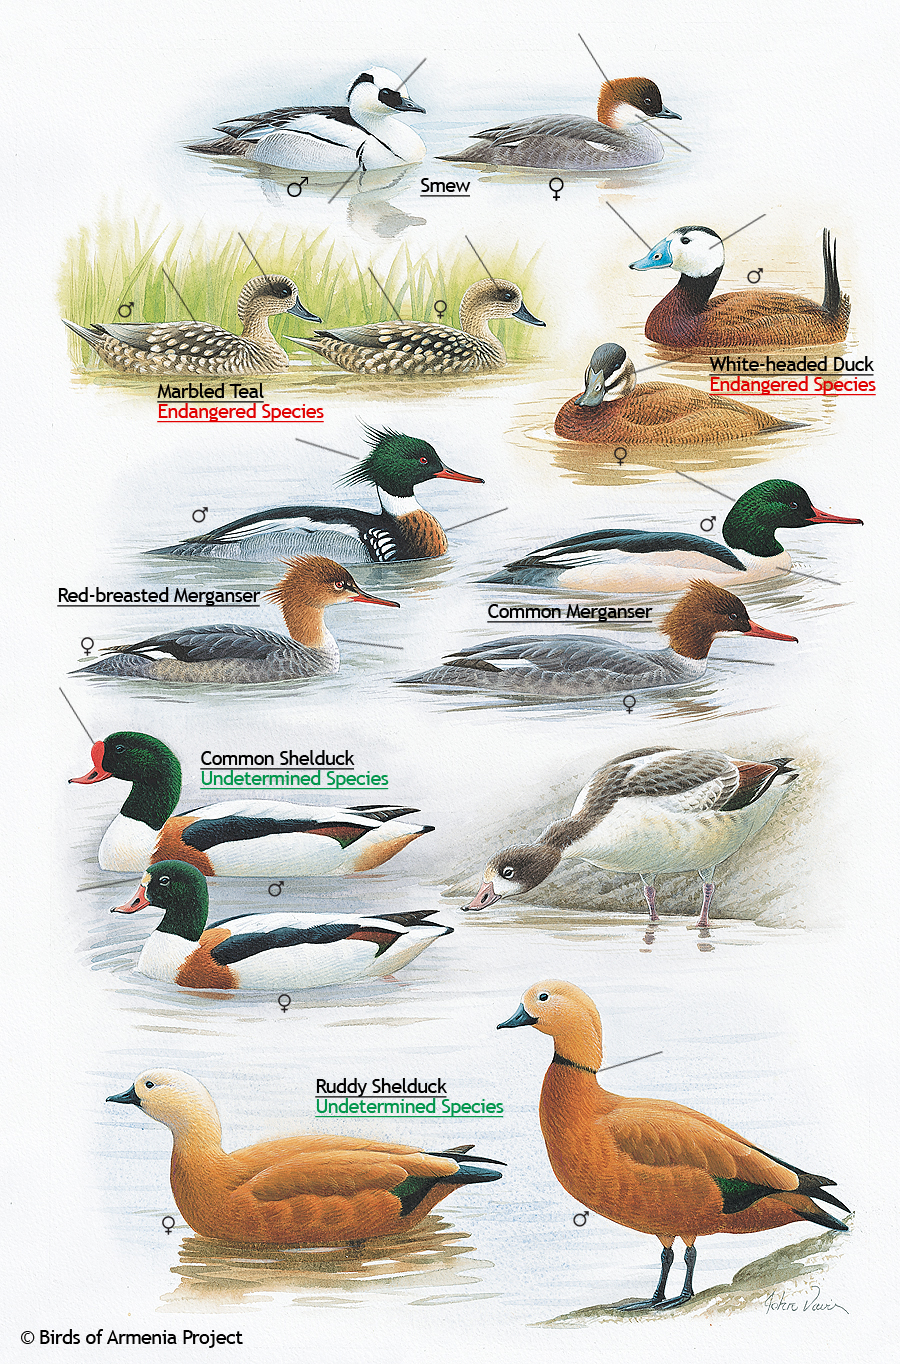 Smews, Teals, Ducks, Mergansers, and Shelducks